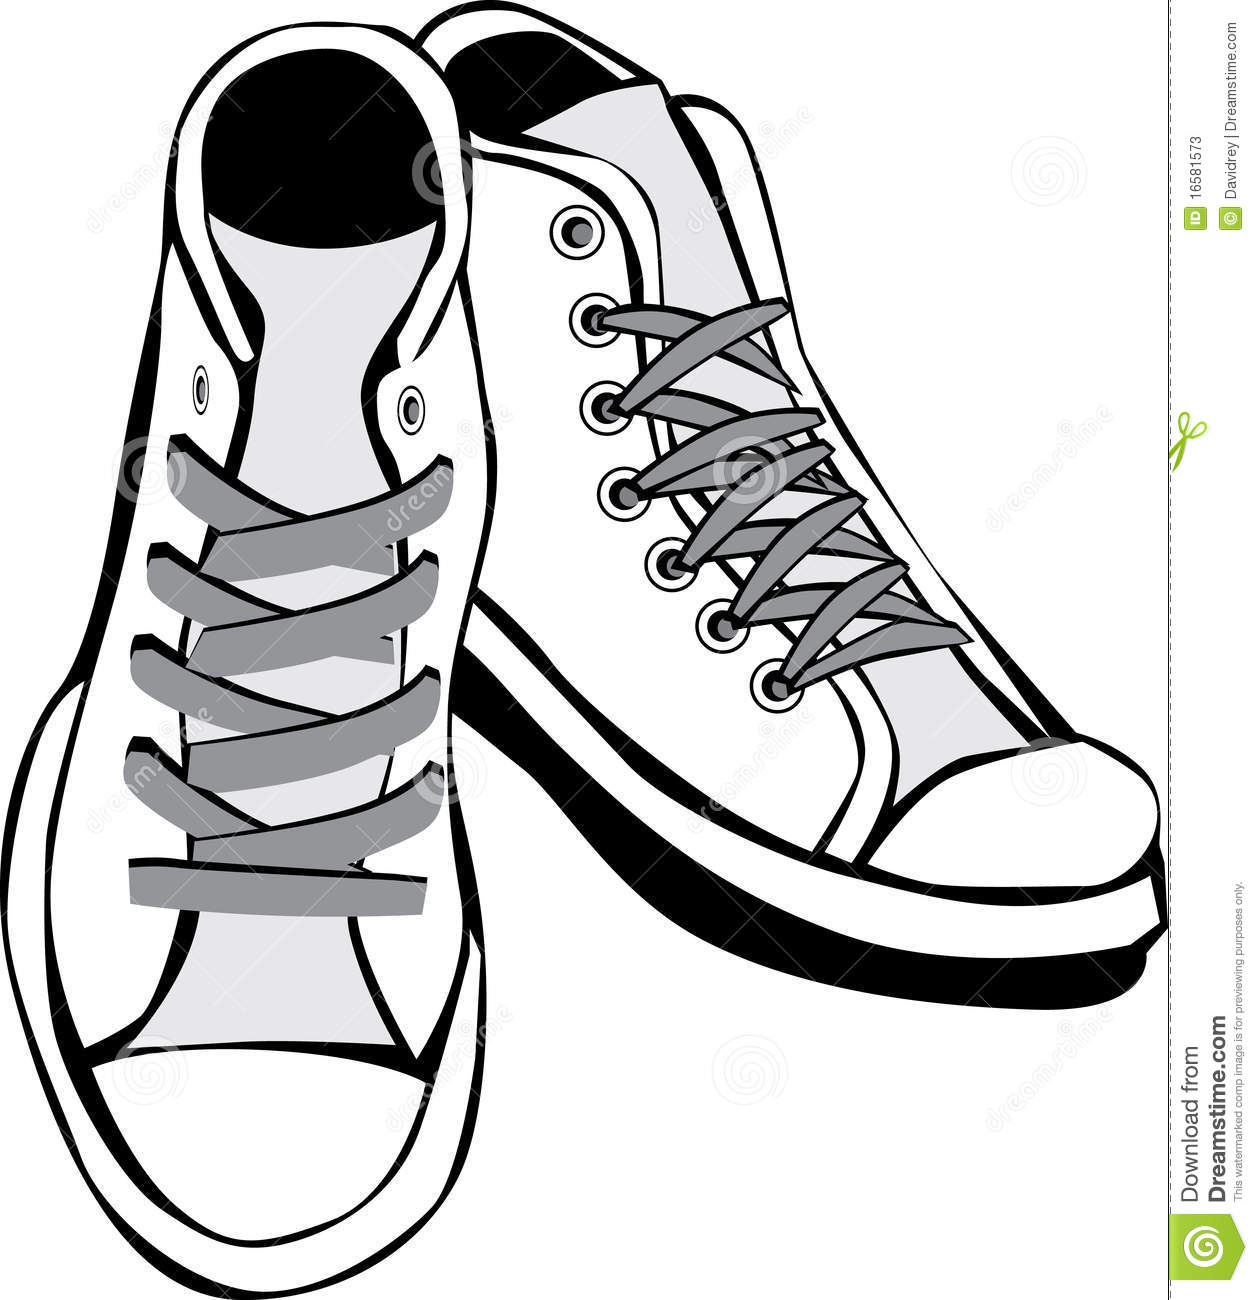 tennis shoes stock vector illustration of footwear drawing 16581573 rh dreamstime com cartoon tennis shoes clip art cartoon tennis shoes clip art